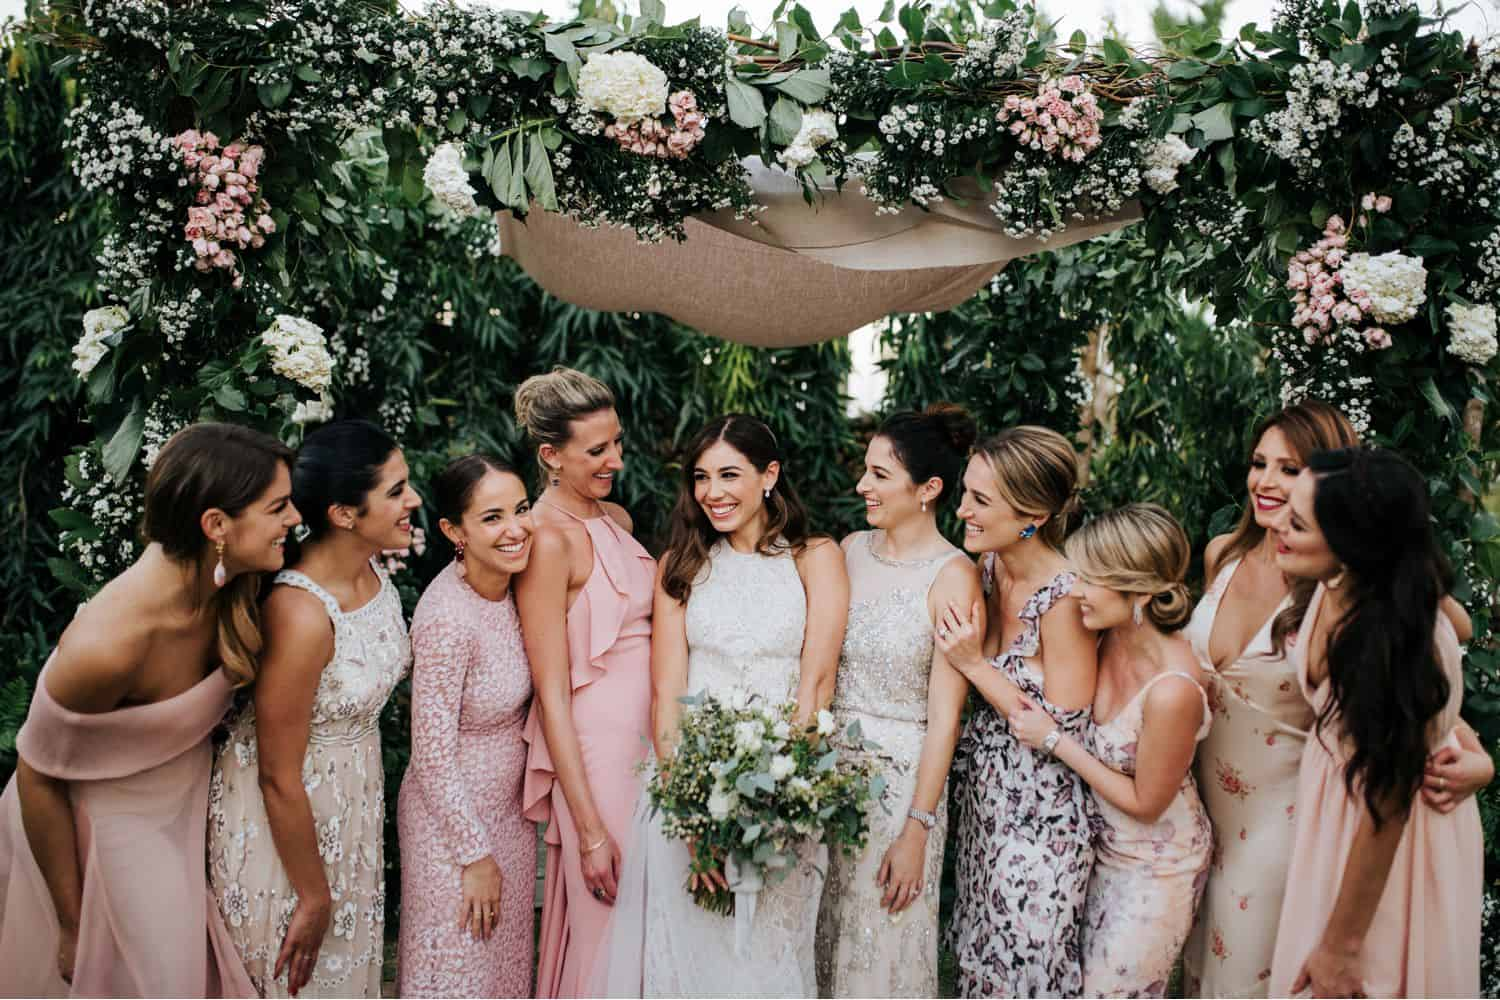 Wedding Print Packages: A bride and her bridesmaids stand under a floral chuppah.